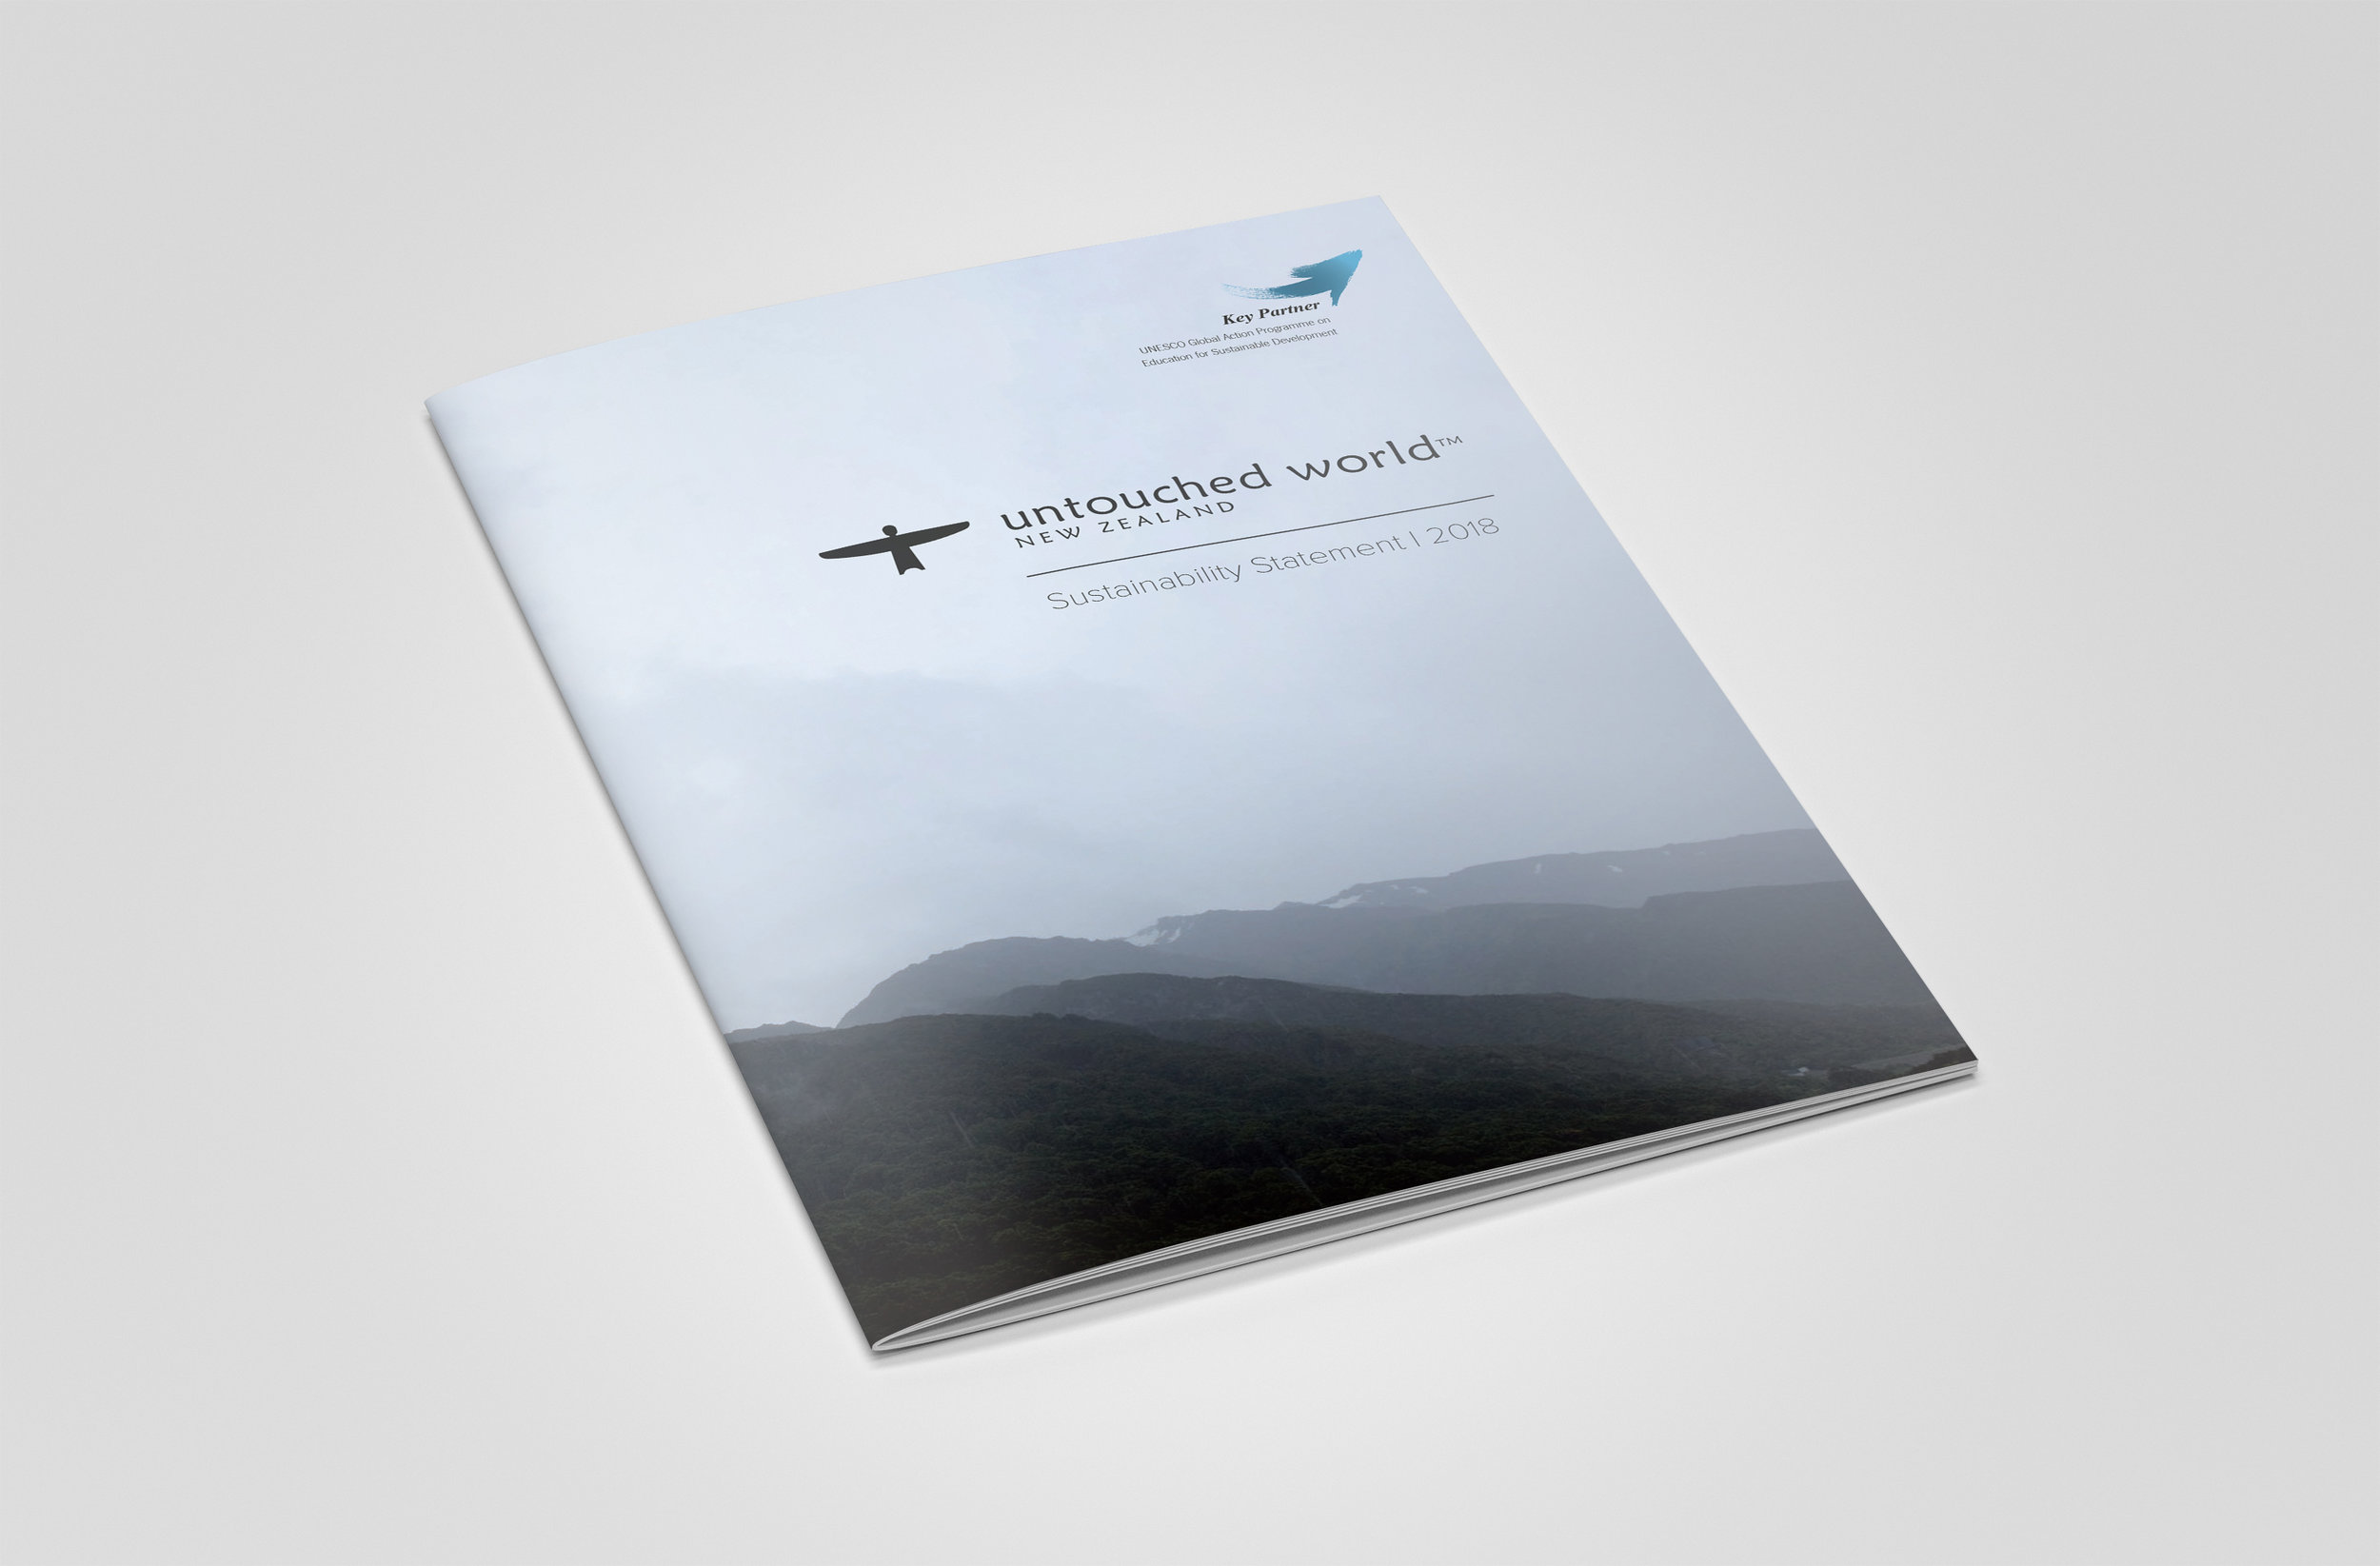 SustainabilityBook-Cover-Visual.jpg